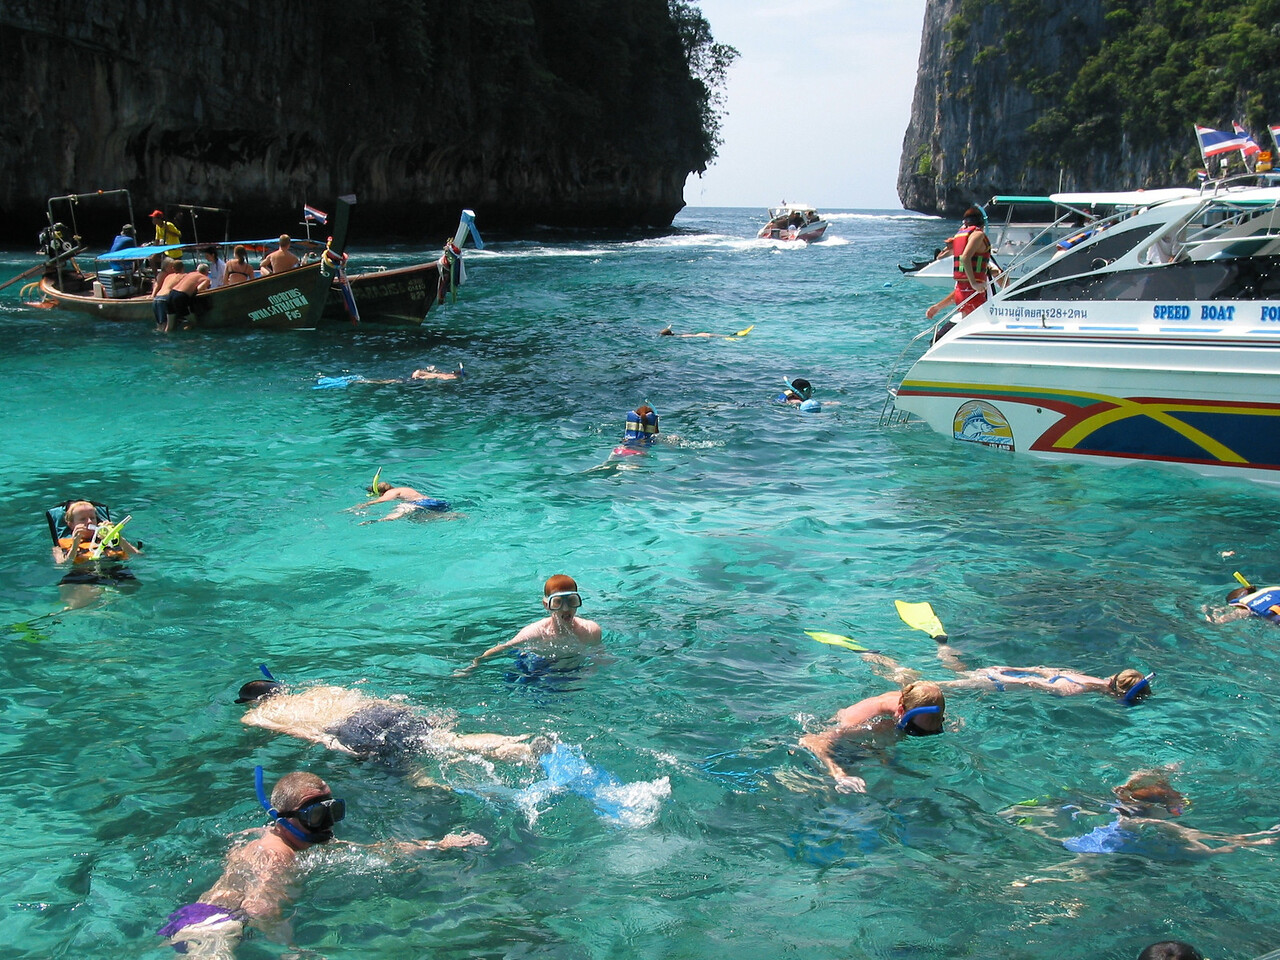 Ko Phi Phi is a popular place for diving and snorkeling, kayaking and other marine recreational activities